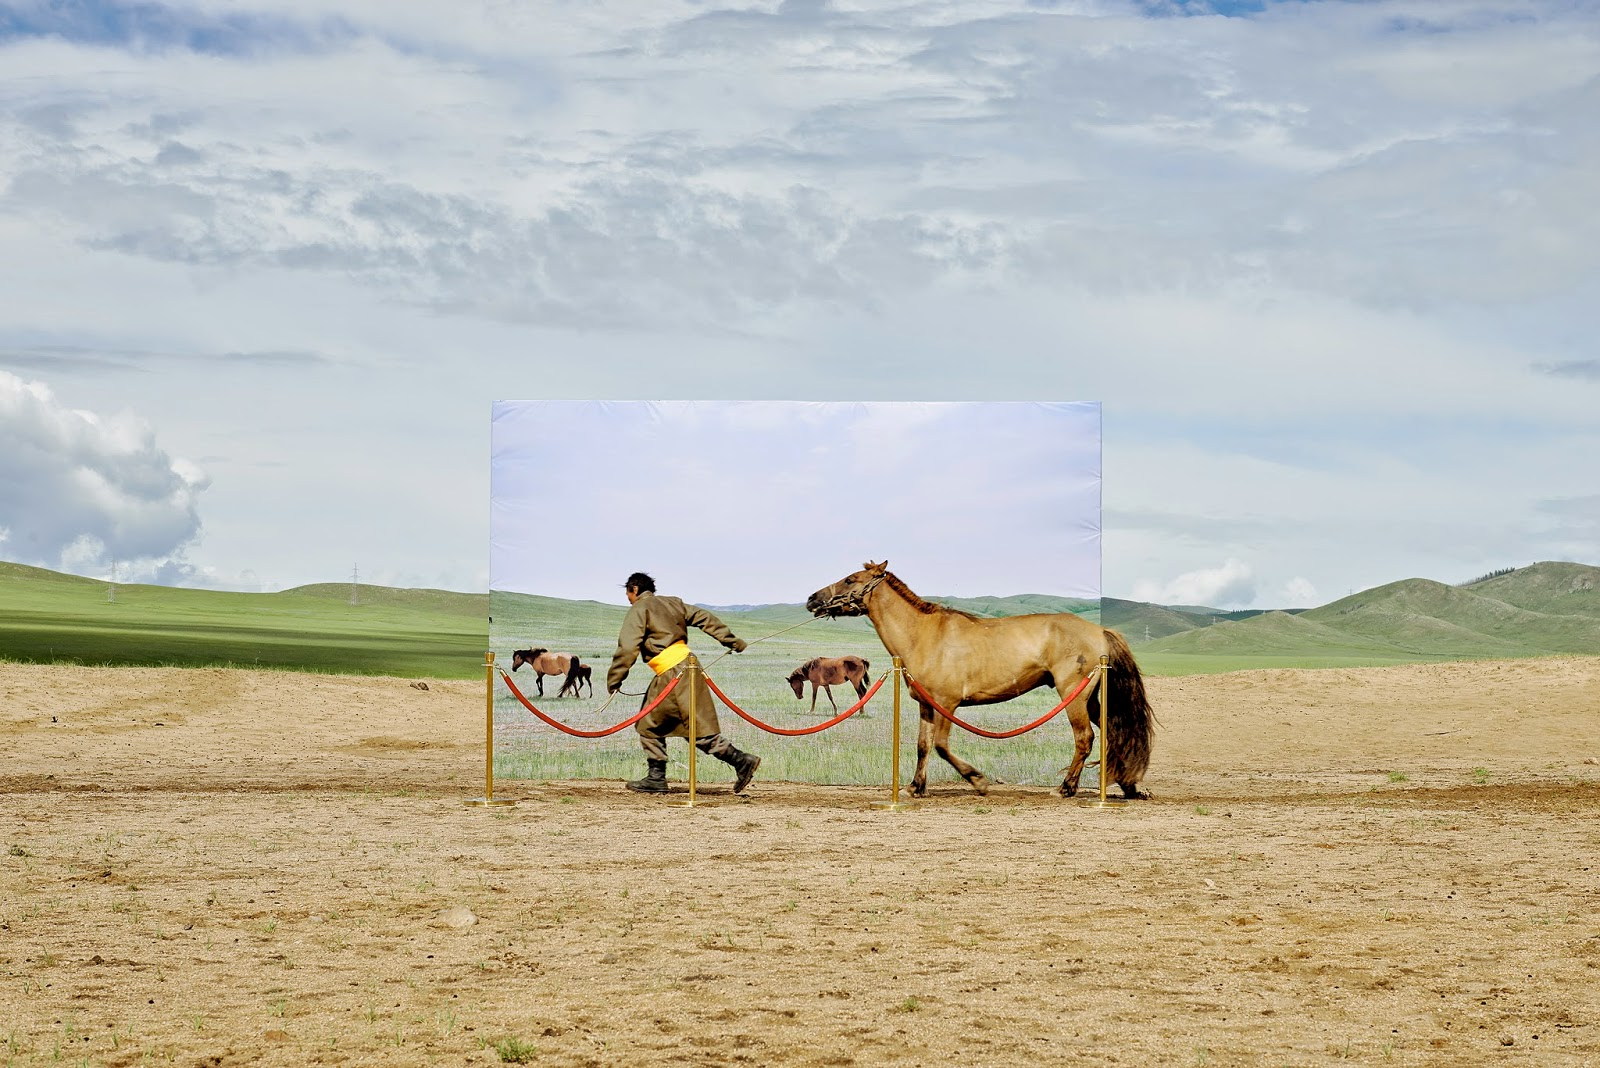 Copyright: ©Daesung Lee, Republic of Korea, Shortlist, Conceptual, Professional Competition, 2015 Sony World Photography Awards. Series Name: Futuristic Archaeology. Series Description: Still 35% of Mongolians are living a nomadic life and depend on their land for survival. This is increasingly difficult due to serious changes: 25% of the Mongolianland has turned into desert in the past 30 years. Potentially 75 % of Mongolian territory is at risk of desertification. These environmental changes directly threaten the Mongolian nomadic way of life, which has been passed from generation to generation. This project attempts at recreating the museum diorama with actual people and their livestock in a real place where decertifying in Mongolia. It is based on an imagination that these people try to go into museum diorama for survival in the future. This is accomplished with printed images on a billboard placed in conjunction with the actual landscape horizon. I hope to accomplish a sense that the lives of these nomadic people occur between this reality and a virtual space of a museum. Mongolian traditional nomadic lifestyle might be existed only in museum in the future.